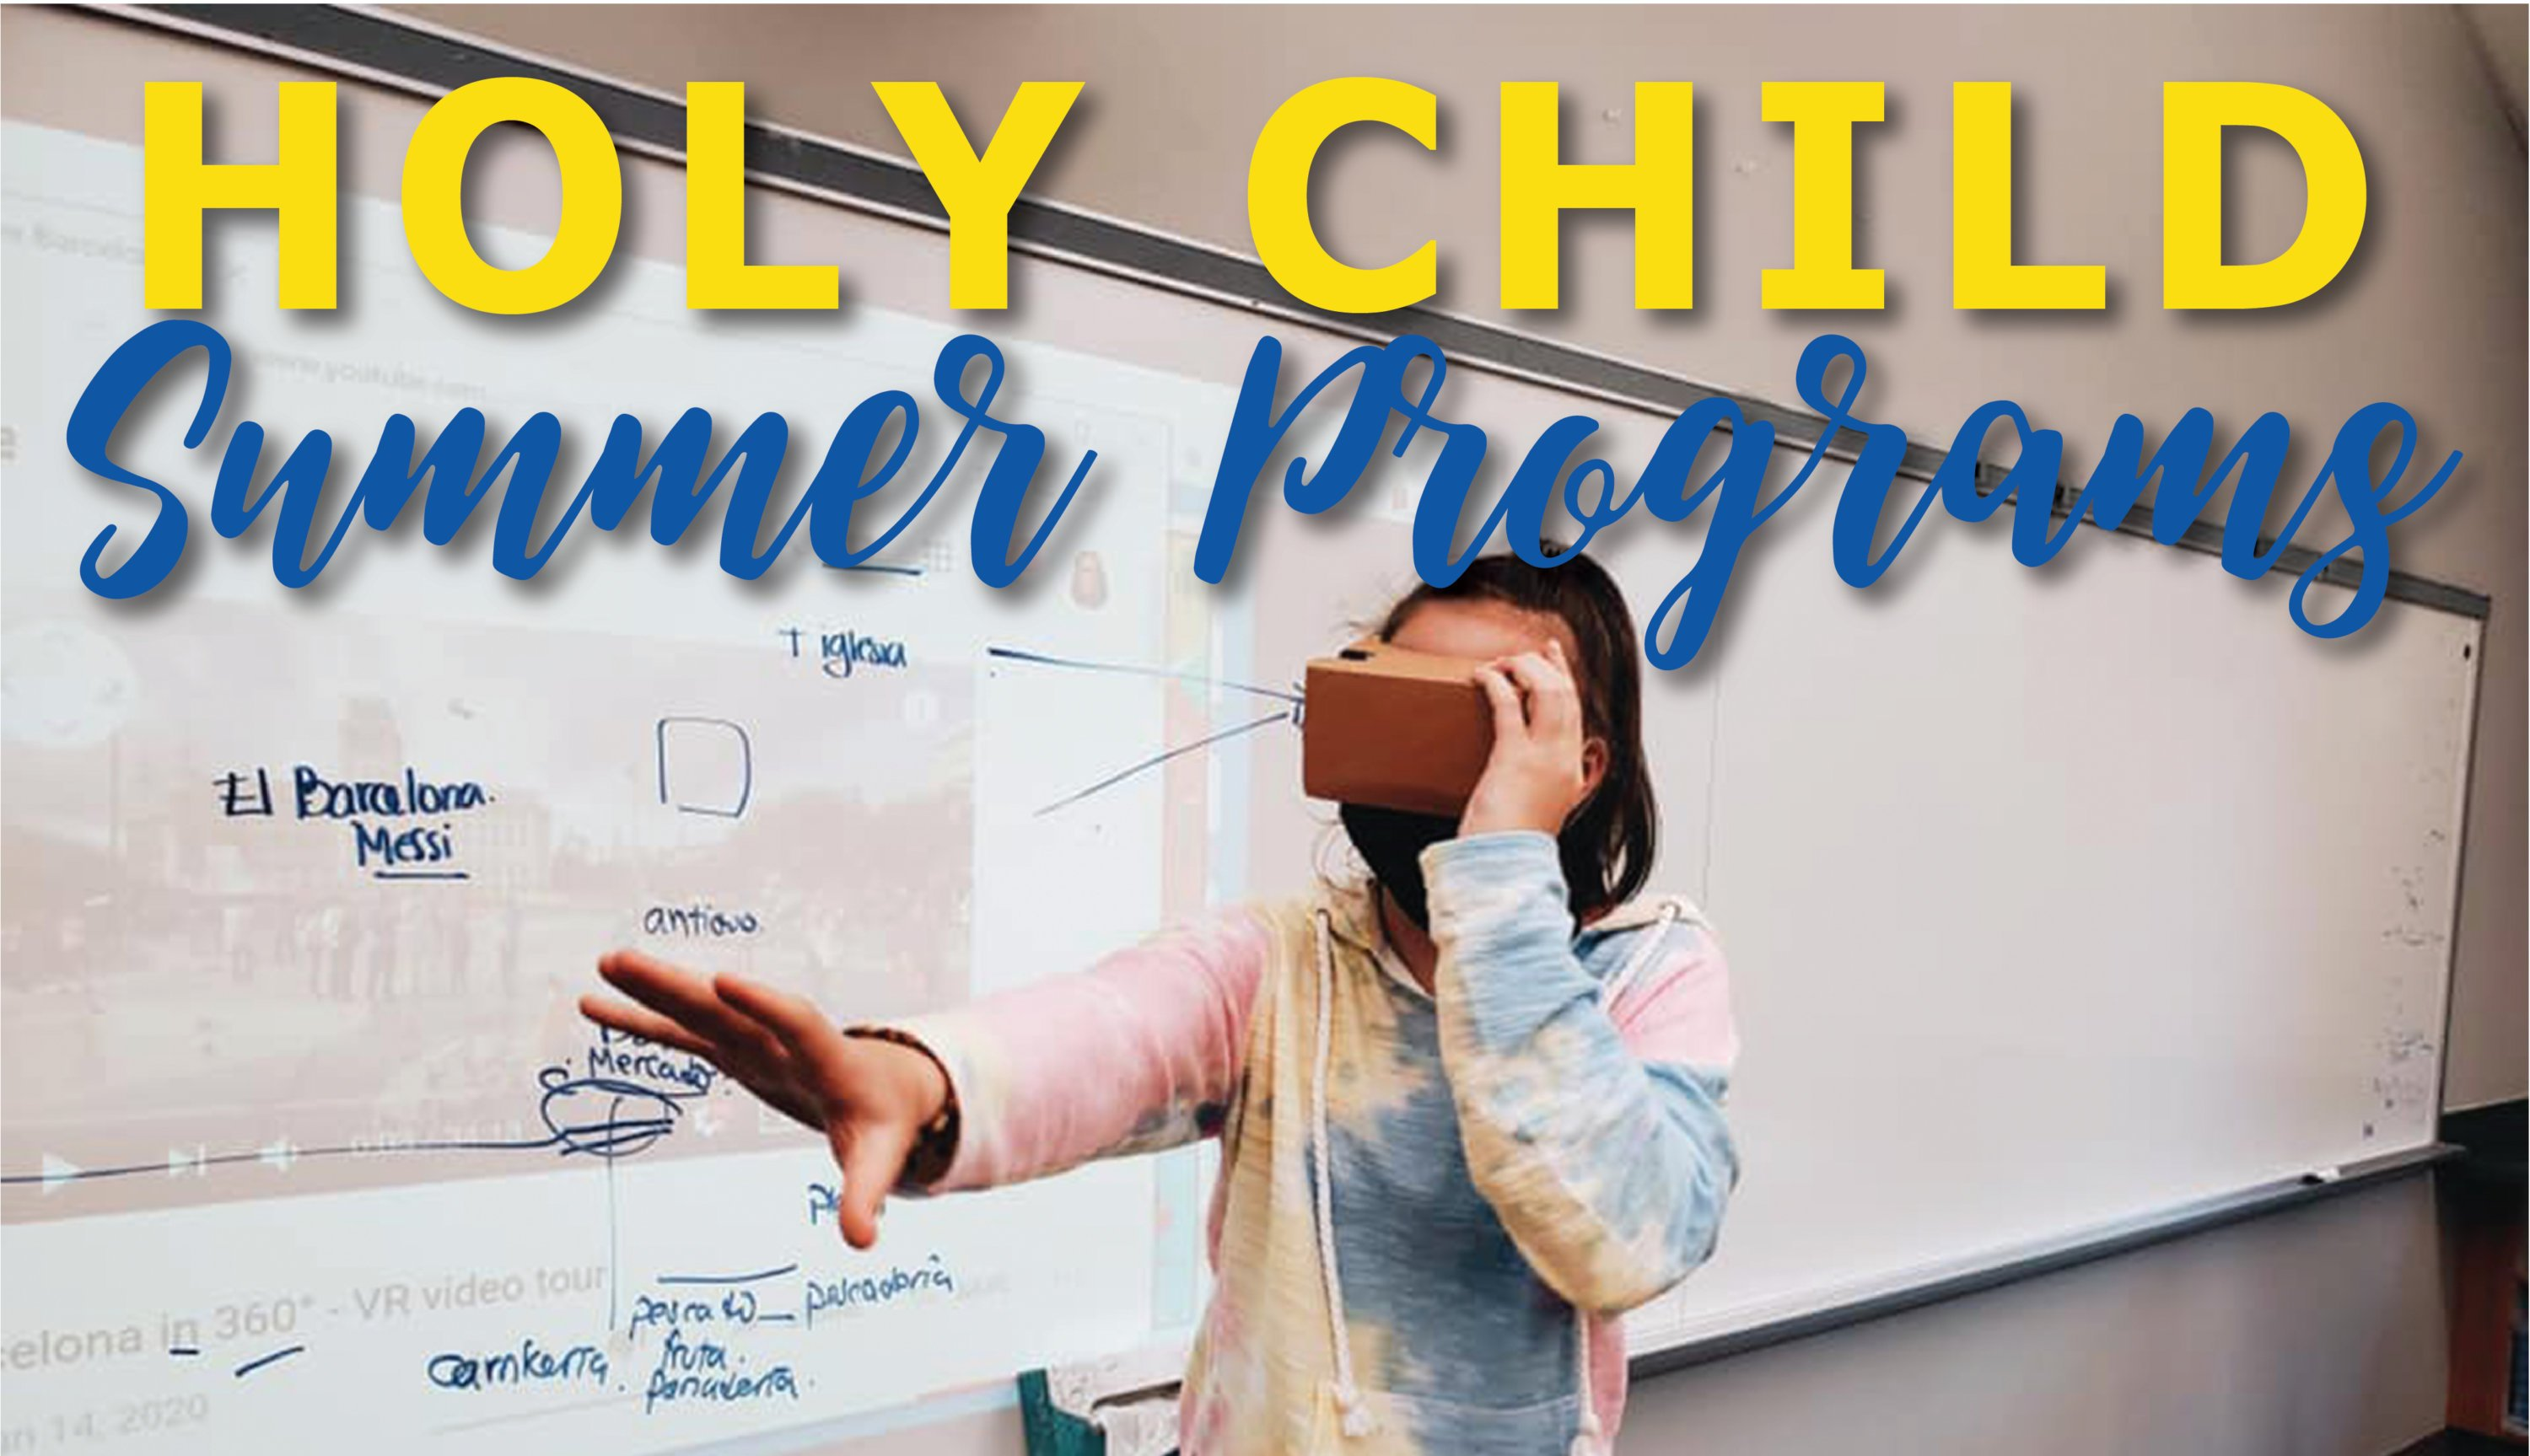 Summer Enrichment Programs at Holy Child